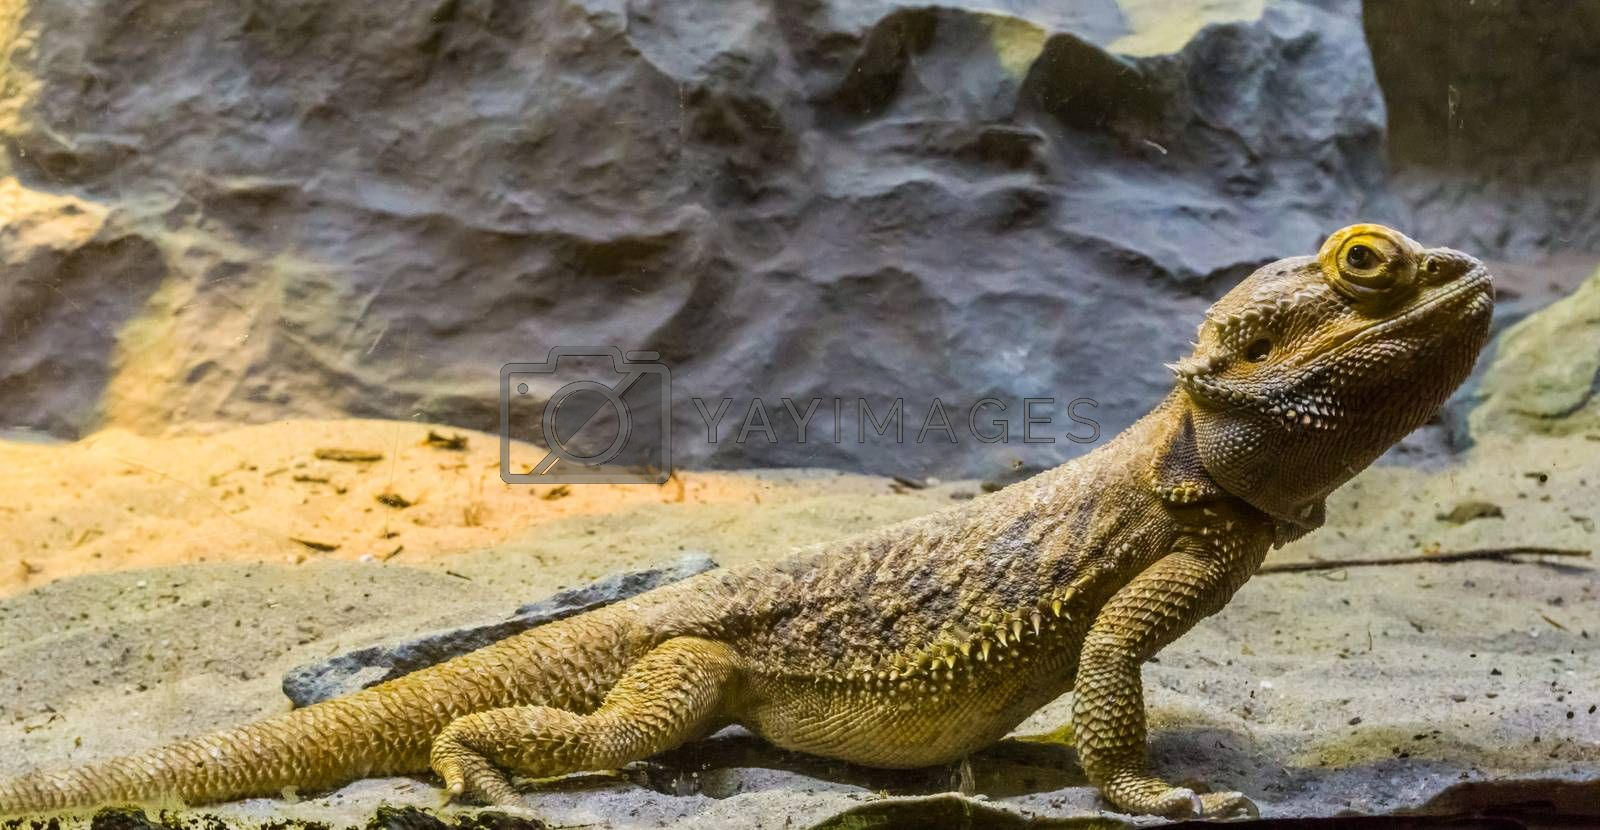 bearded dragon lizard in closeup, tropical reptile from Australia, popular pets